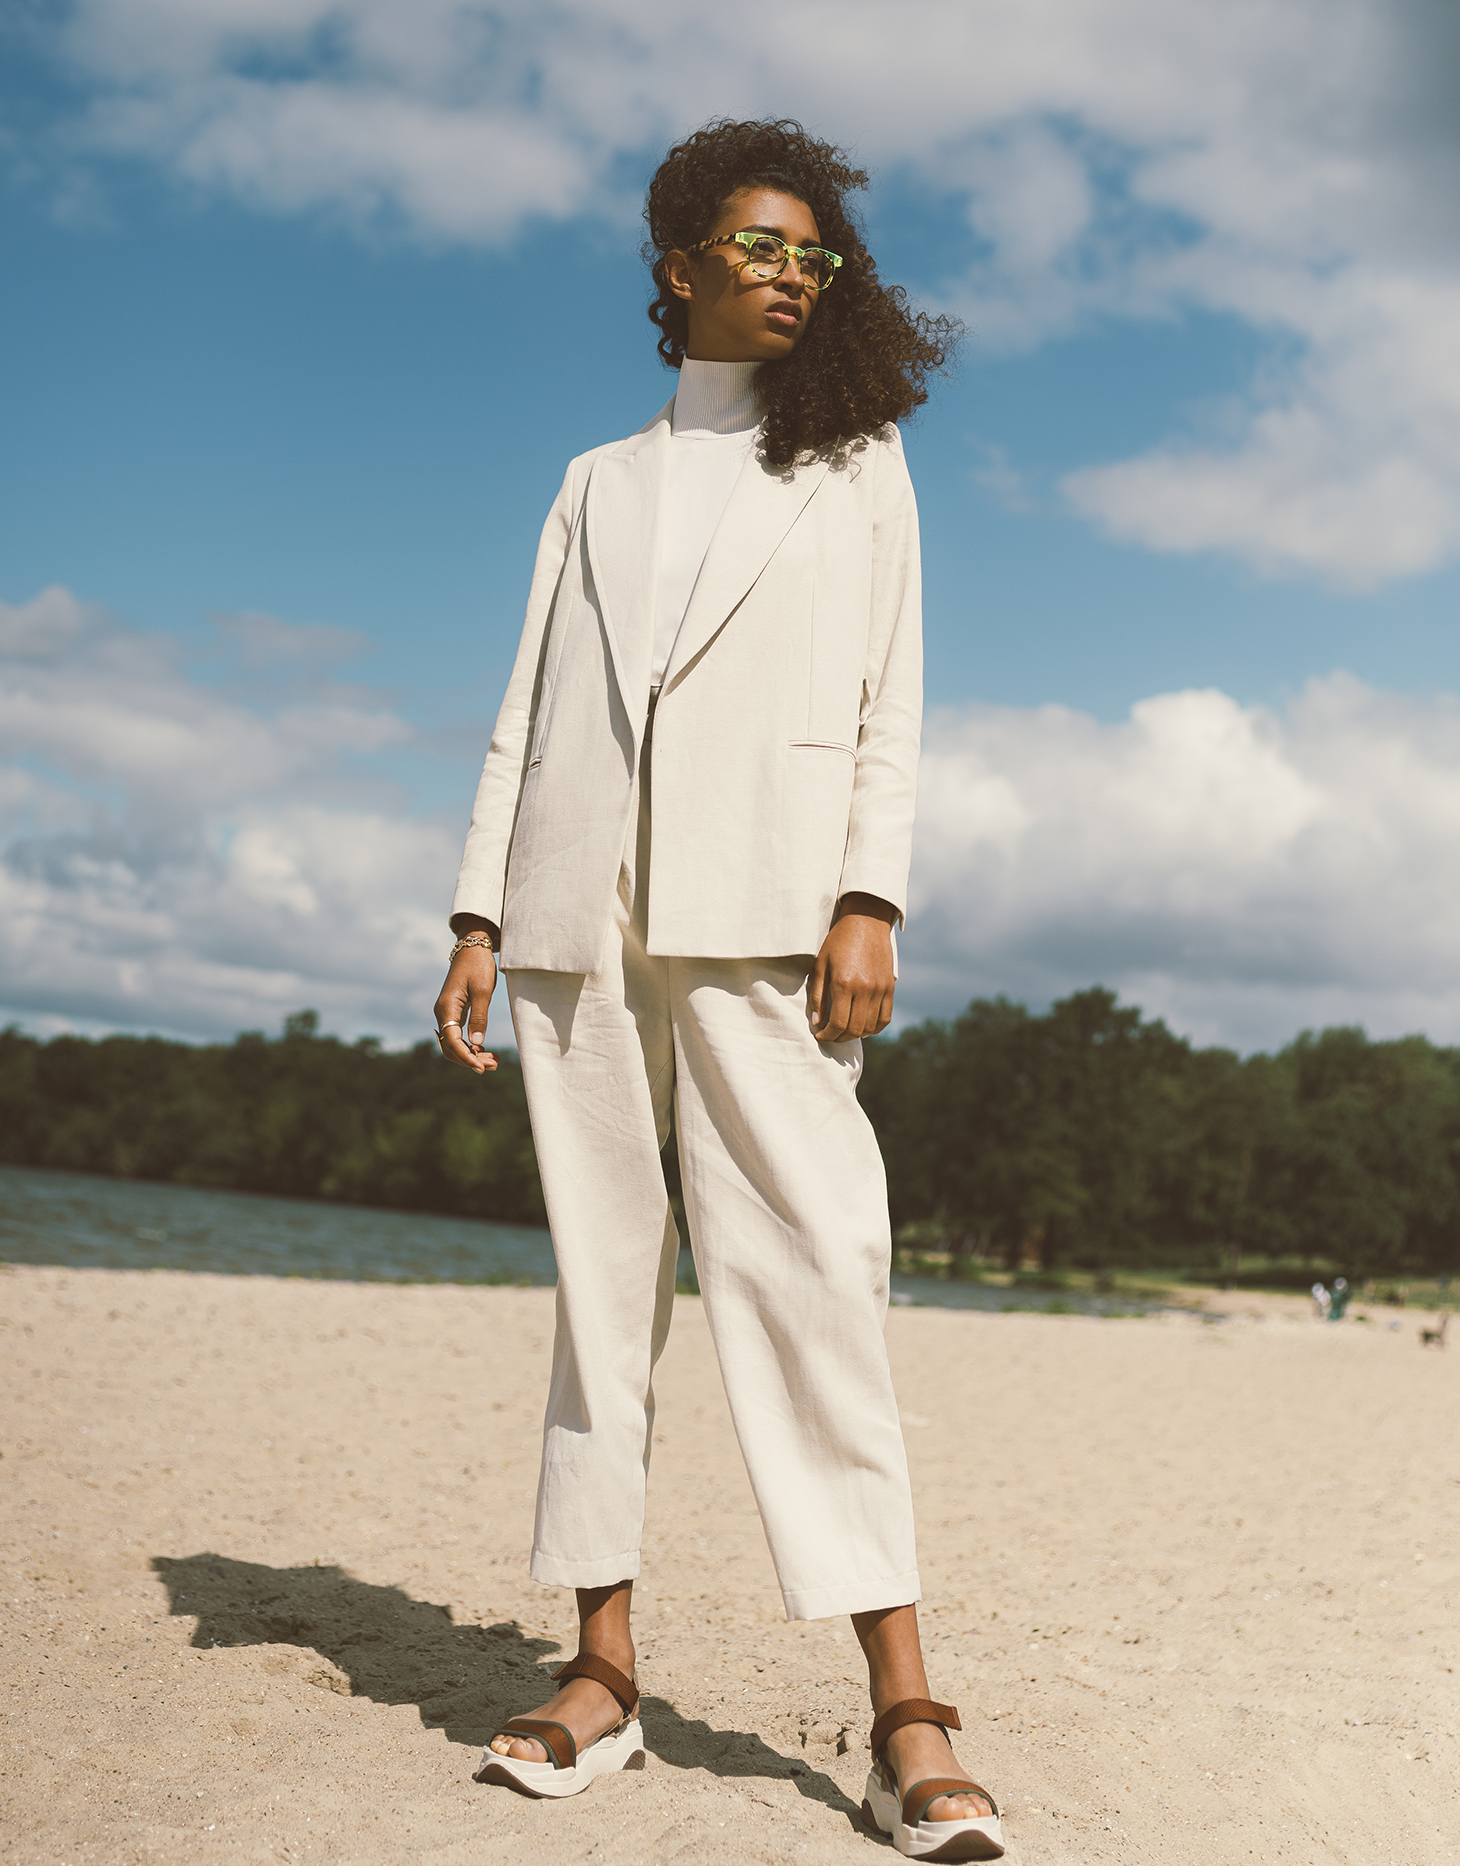 white suit curly hair beach bluey sky glasses